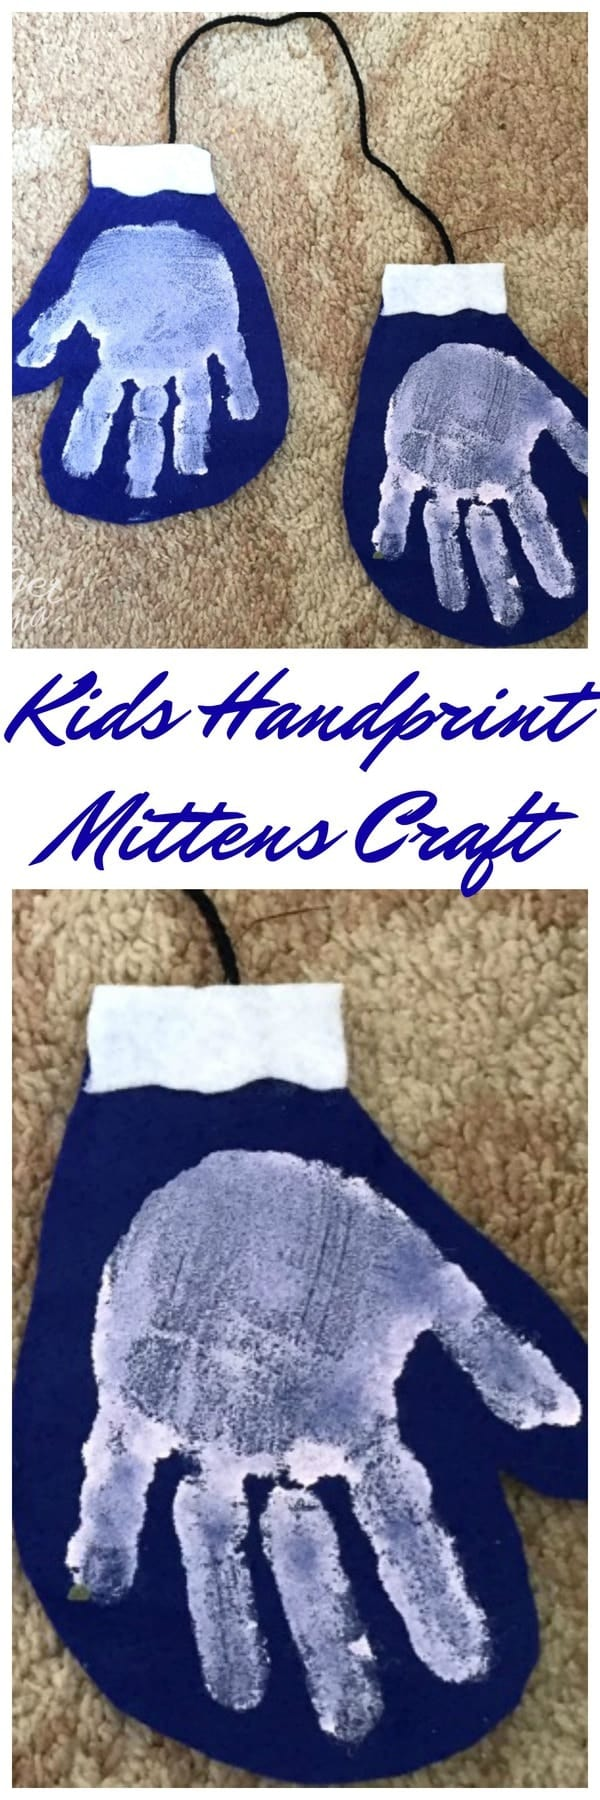 Quick And Easy Kids Handprint Mittens Craft For Kids